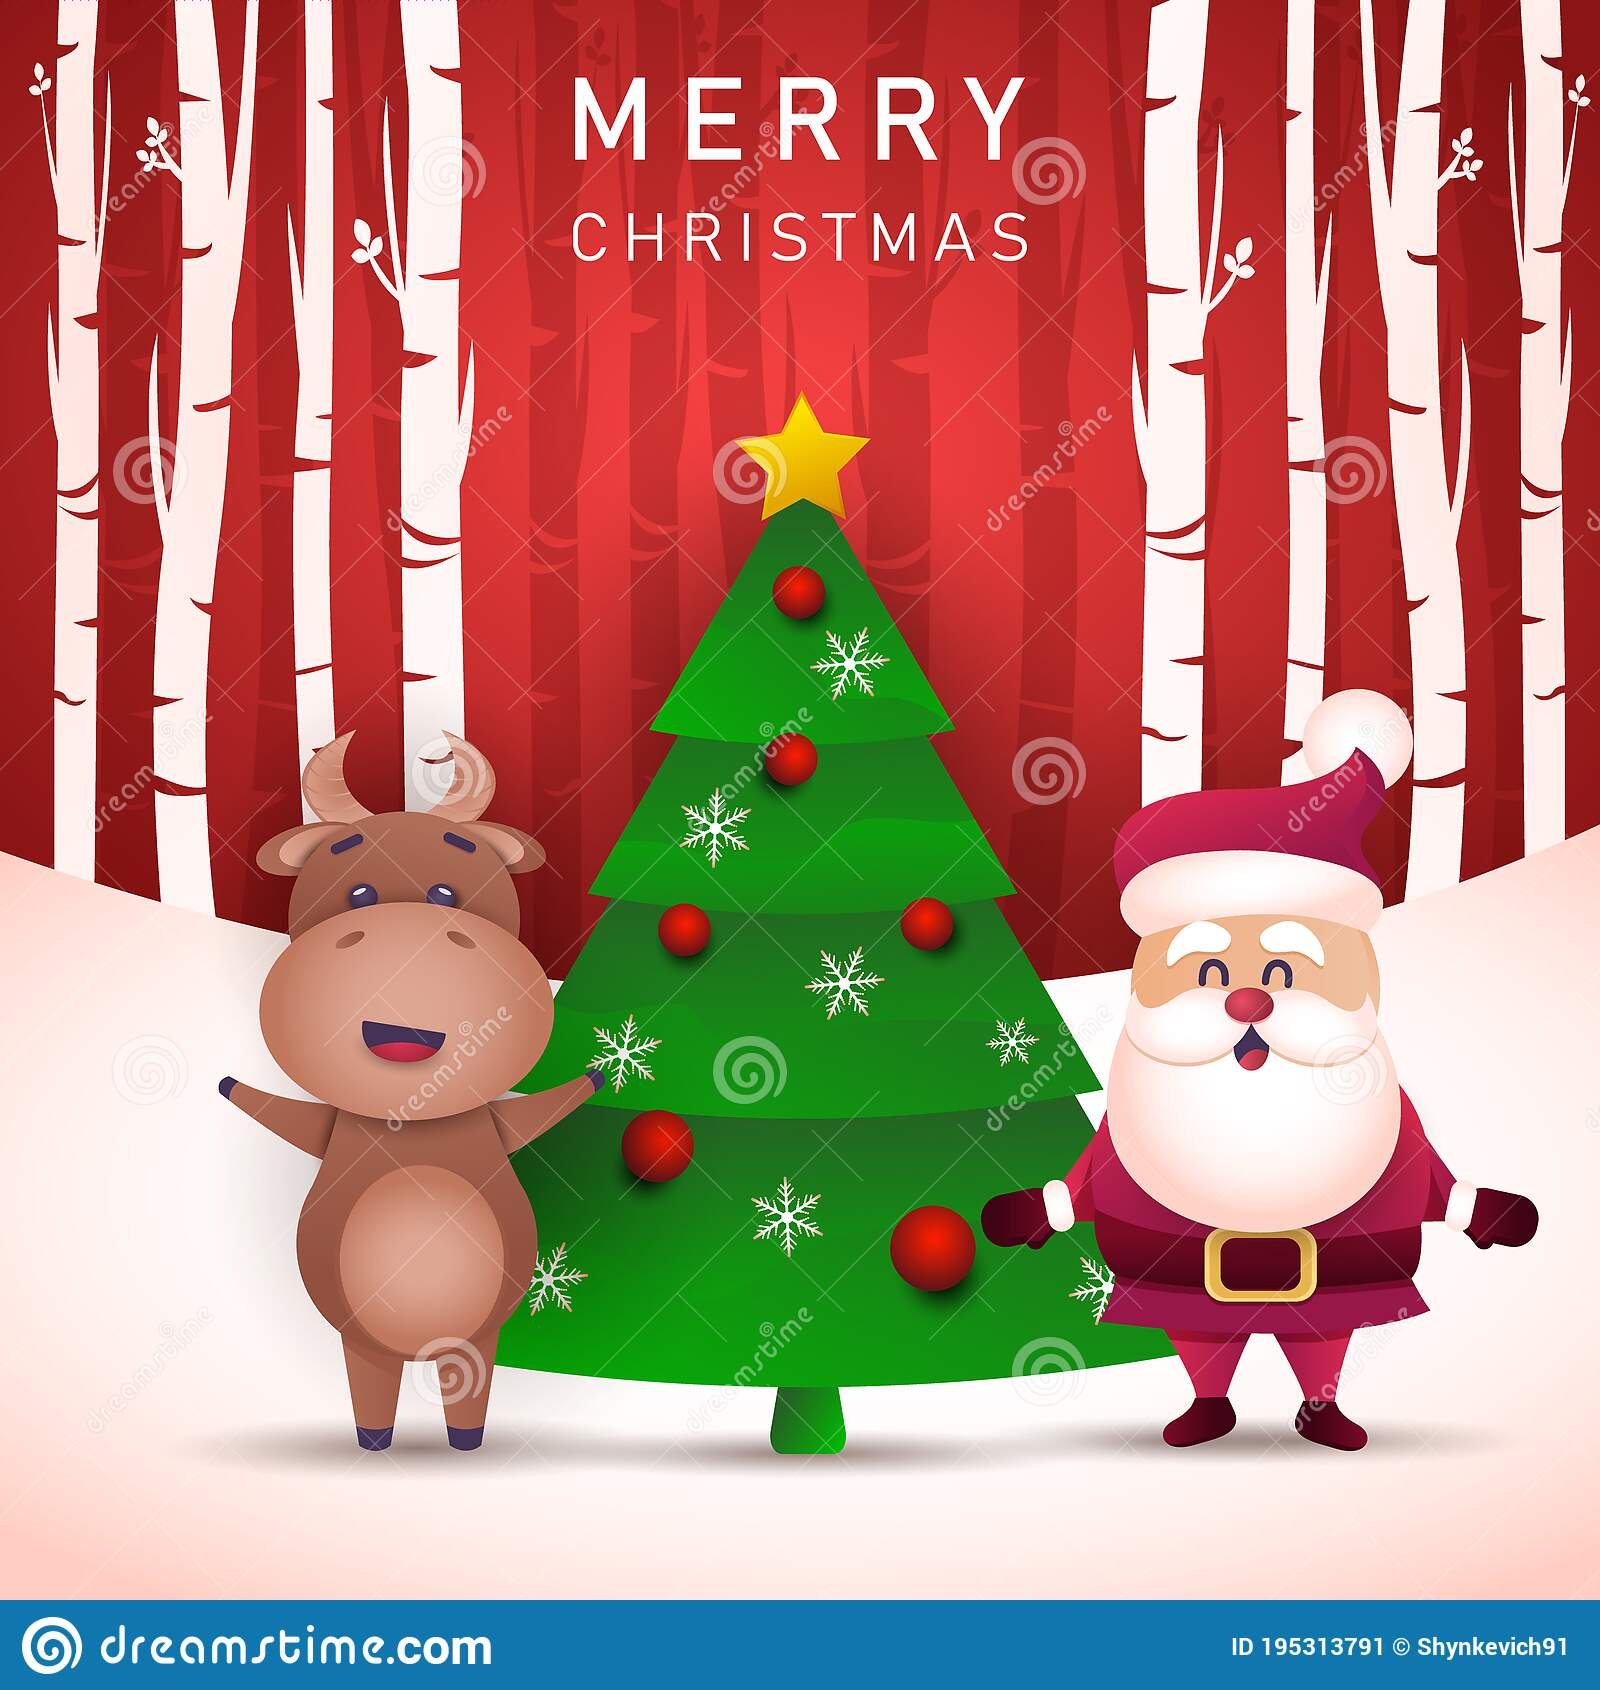 merry christmas and happy new year 2021 greeting card with bull stock illustration illustration of cartoon vector 195313791 merry christmas and happy new year 2021 greeting card with bull stock illustration illustration of cartoon vector 195313791